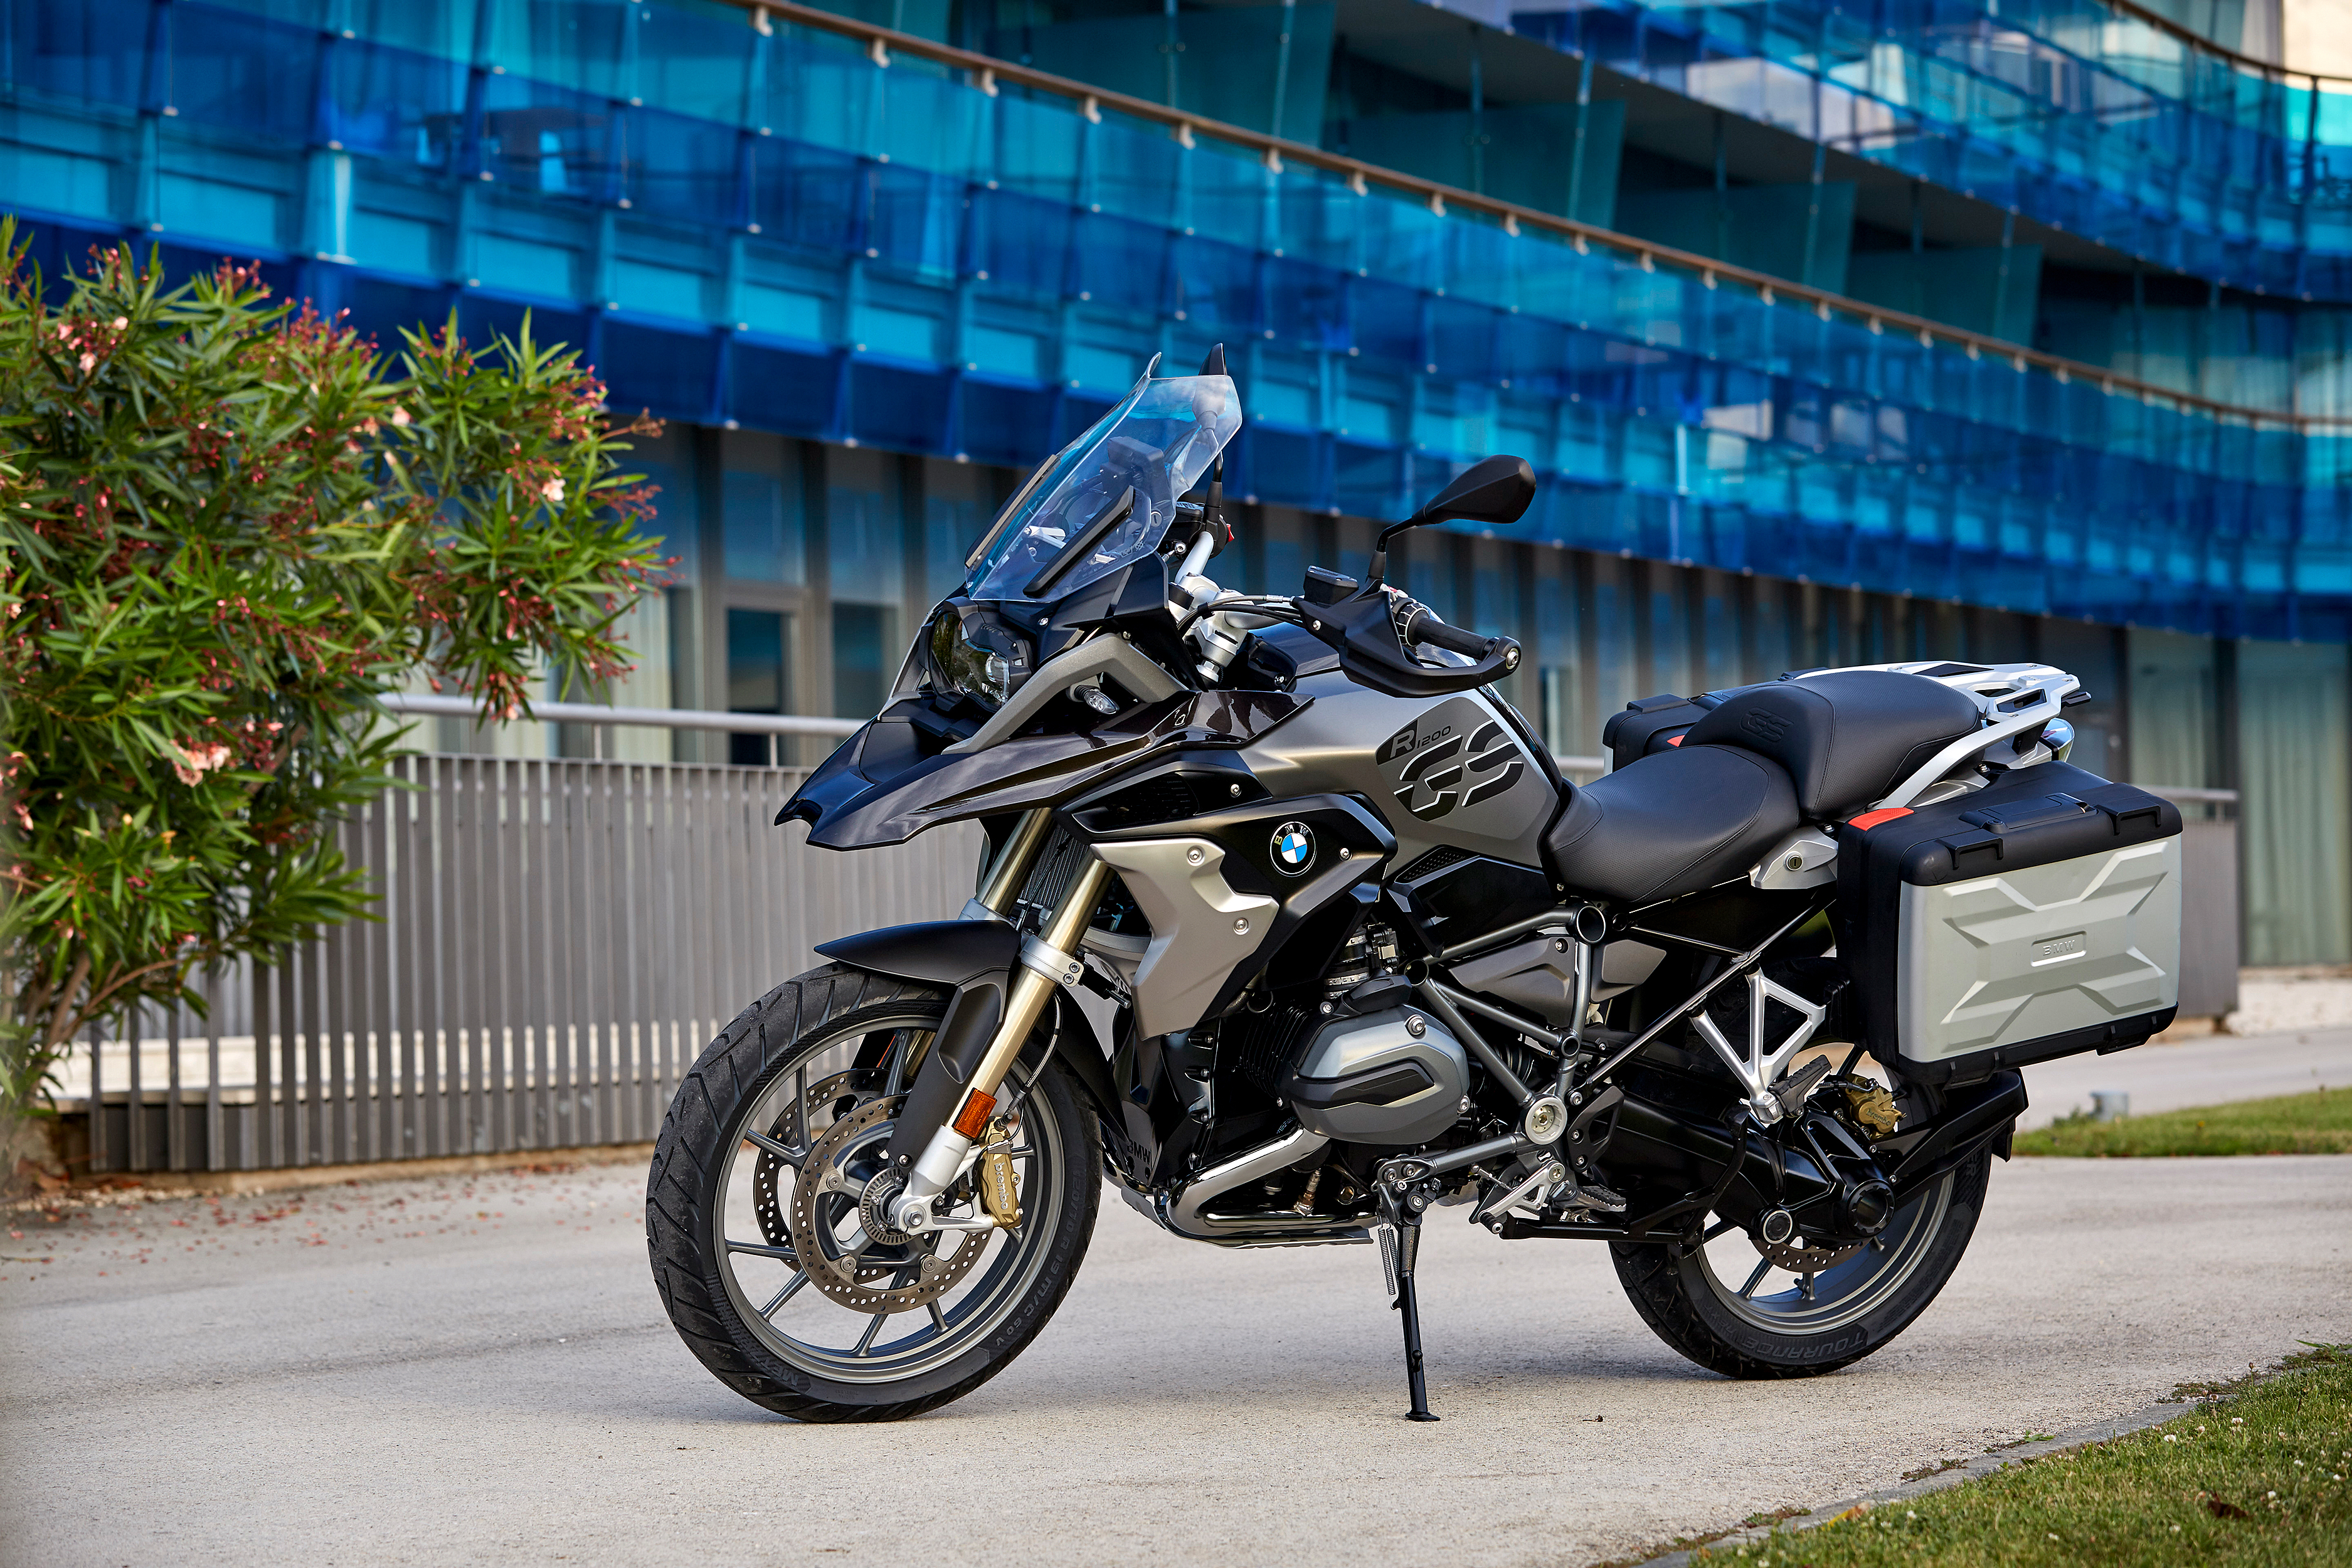 2017 bmw motorrad r1200 gs – all new for 2017 with rallye and